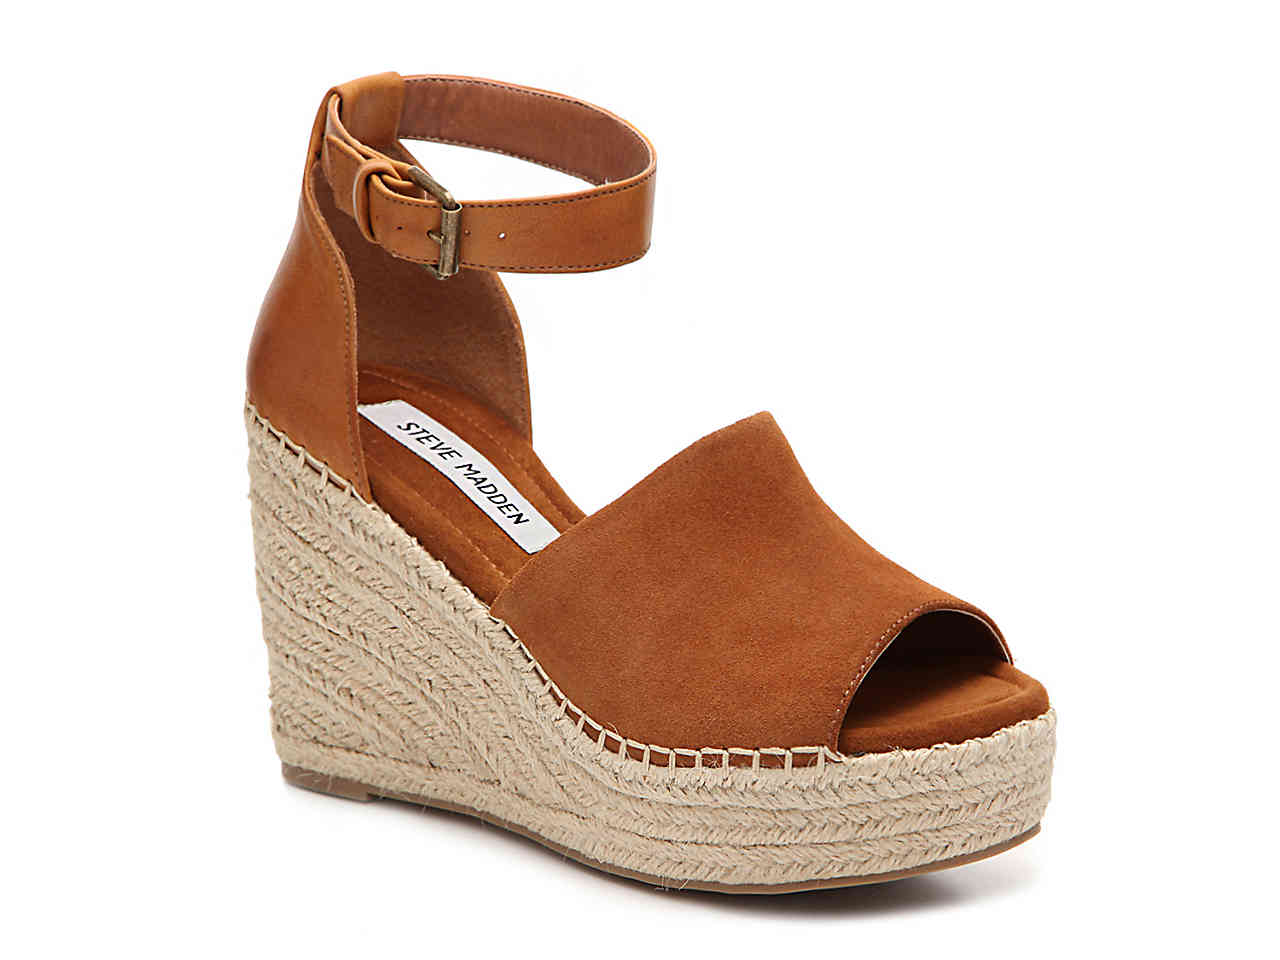 Wedge Sandals for a natural, classic or casual look